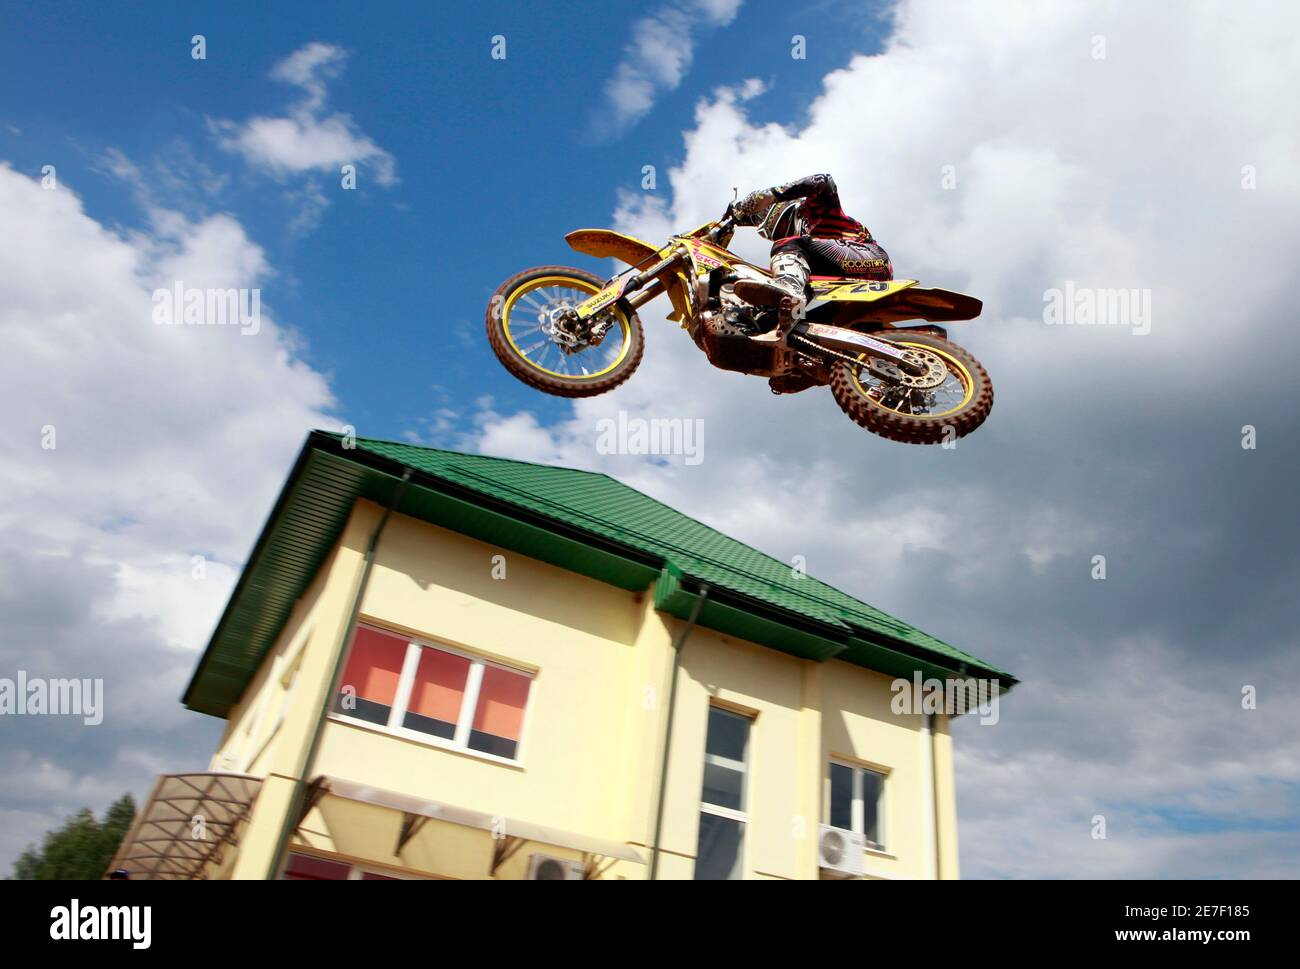 Clement Desalle of Belgium leads during the MX1 motocross World Championship Grand Prix of Latvia classification race in Kegums June 26, 2010. REUTERS/Ints Kalnins (LATVIA - Tags: SPORT MOTOR RACING) Stock Photo